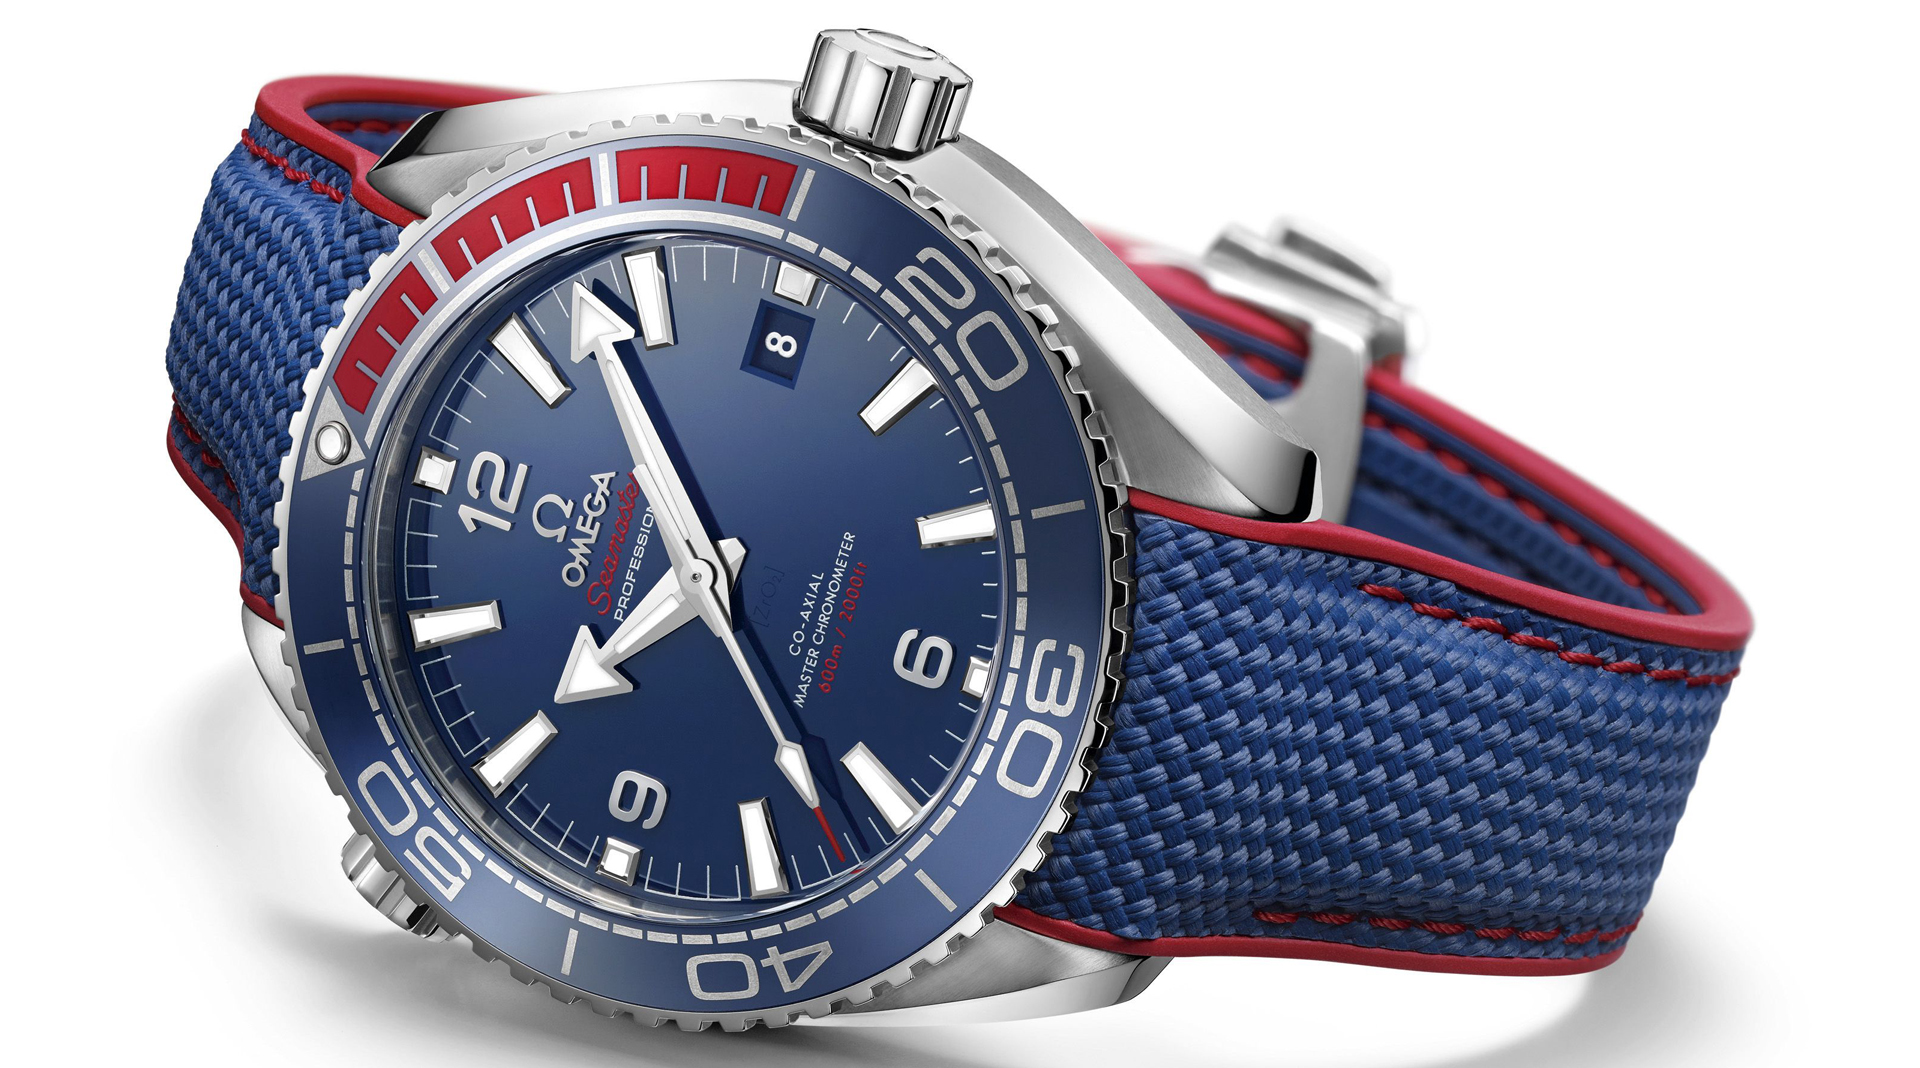 Omega Seamaster Planet Ocean PyeongChang 2018 Limited Edition side